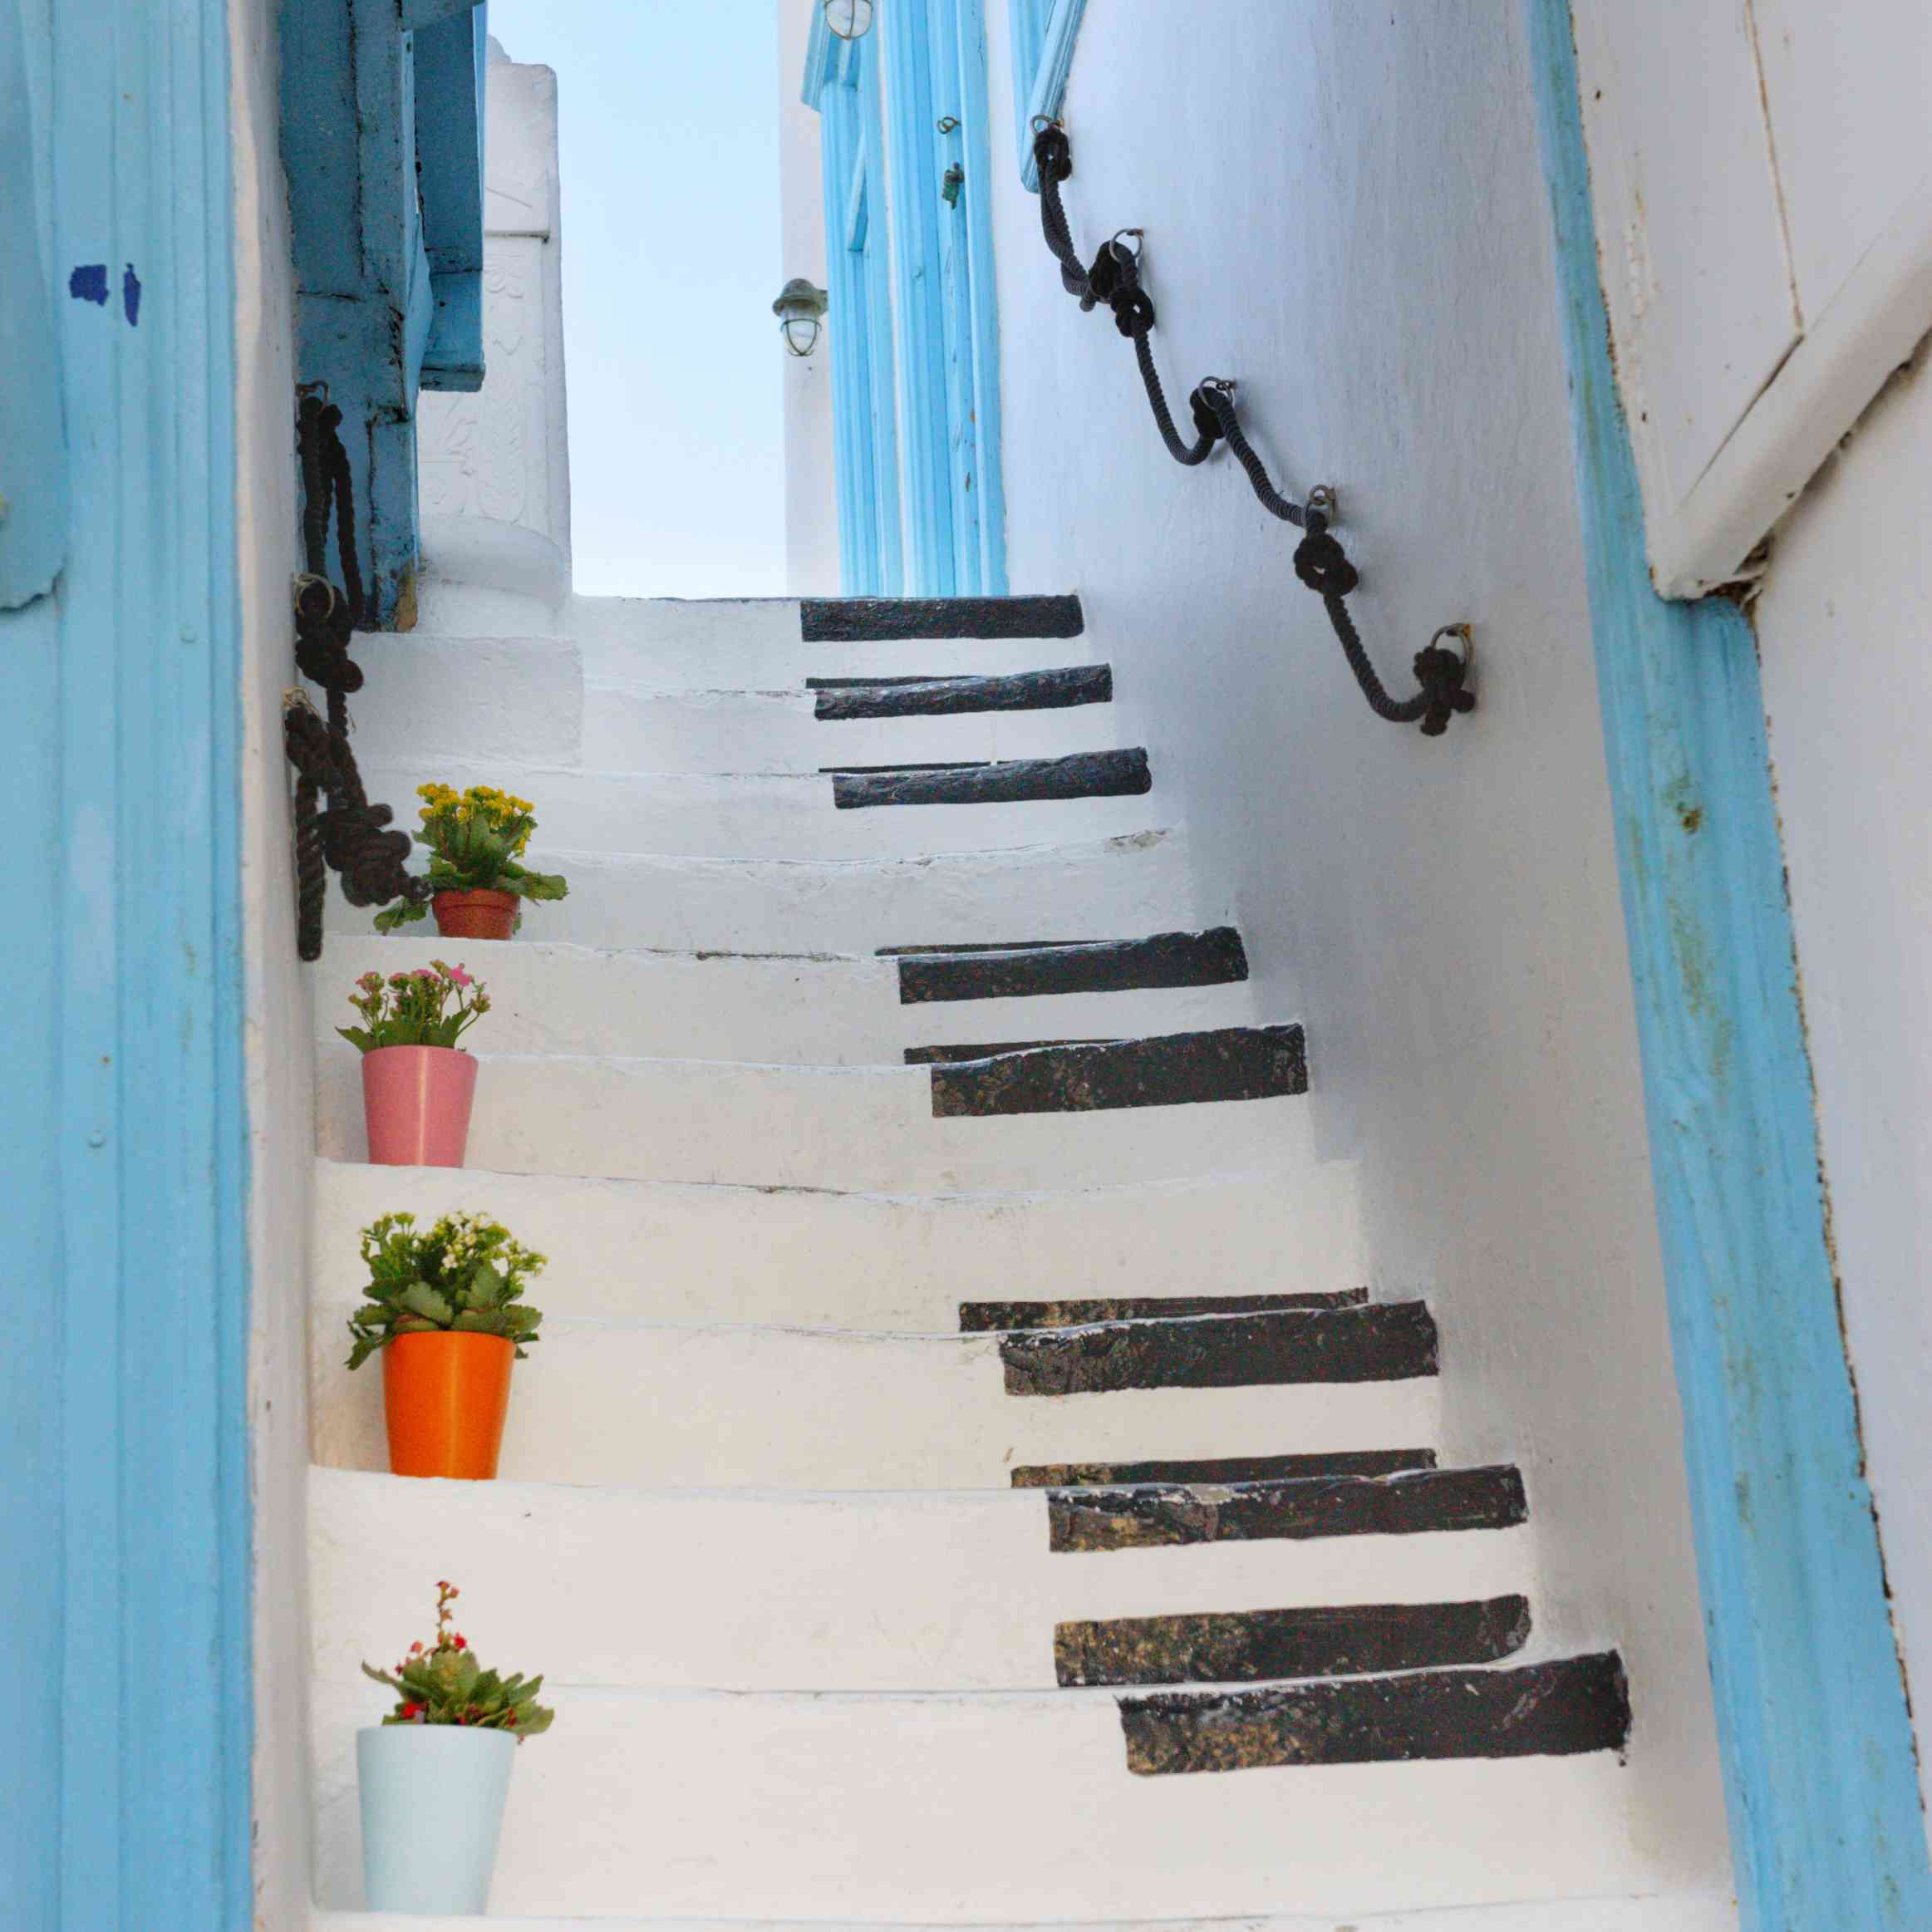 Staircase painted as piano.